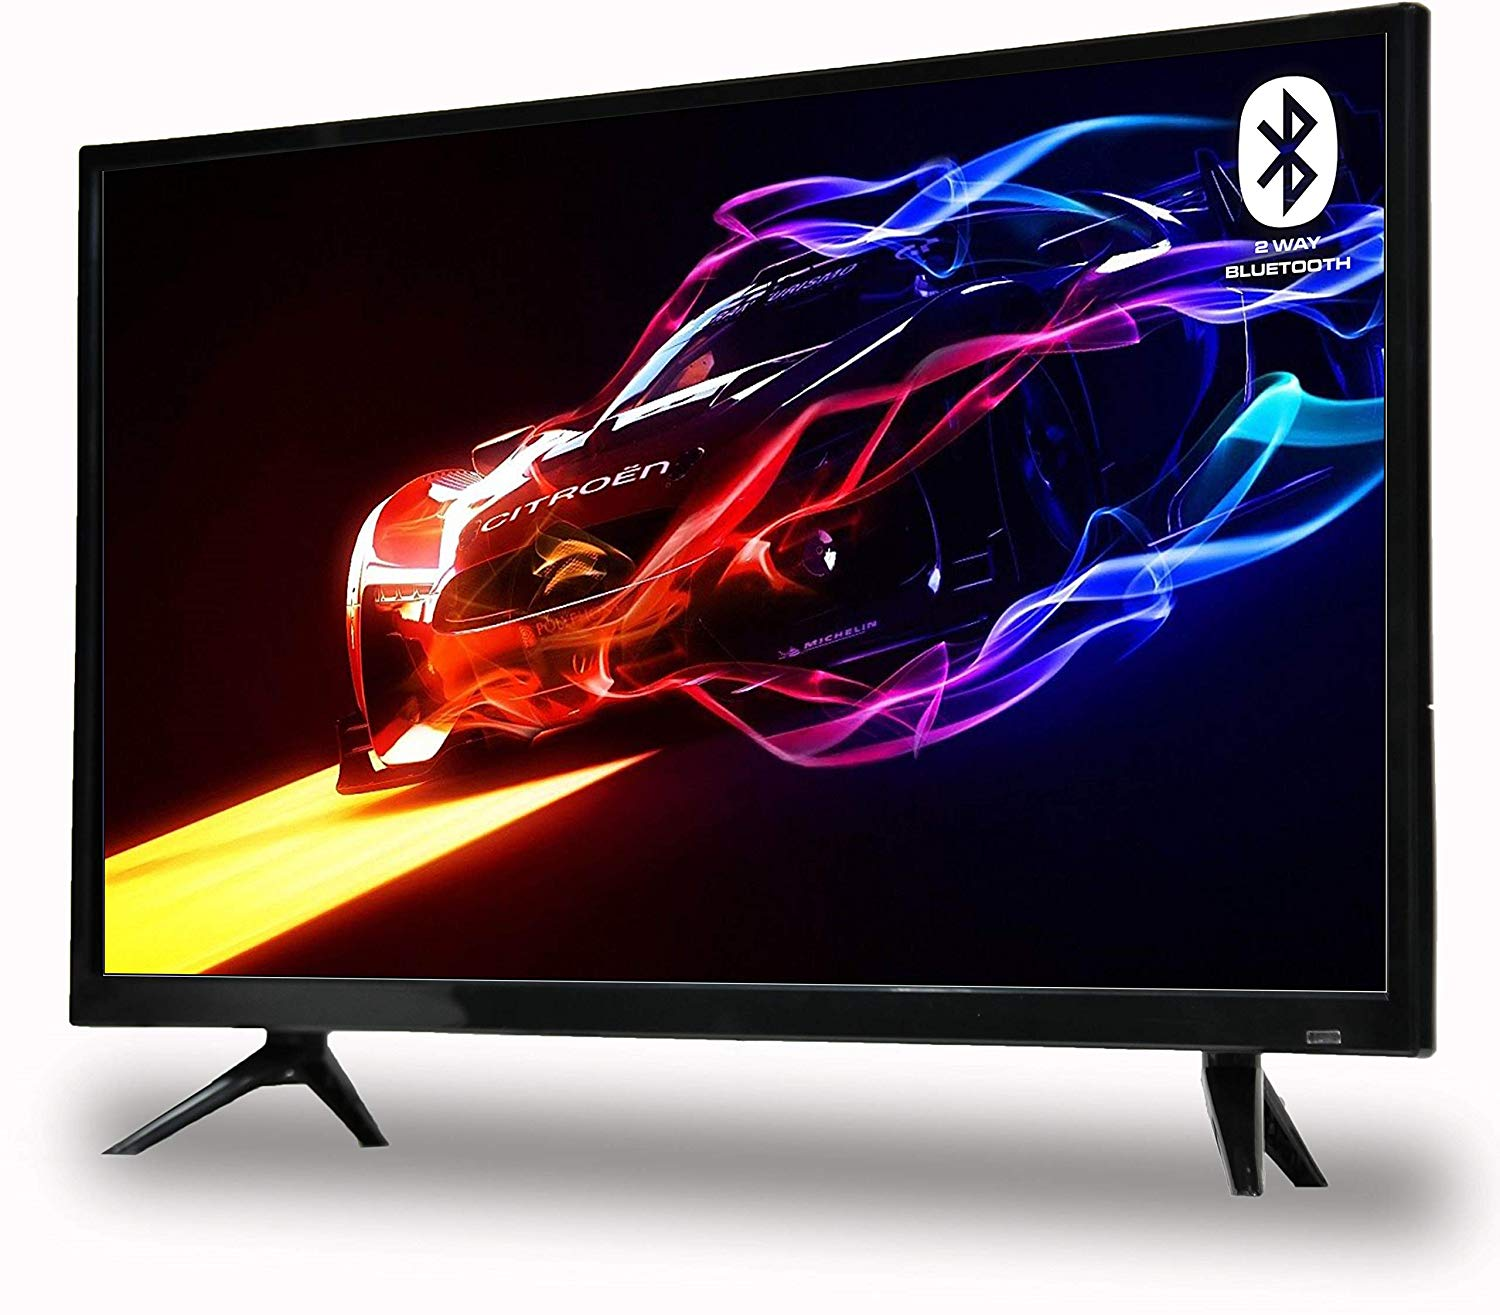 Fortex 32 inches HD Ready IPS LED TV FX32CN01With In-Built Bluetooth